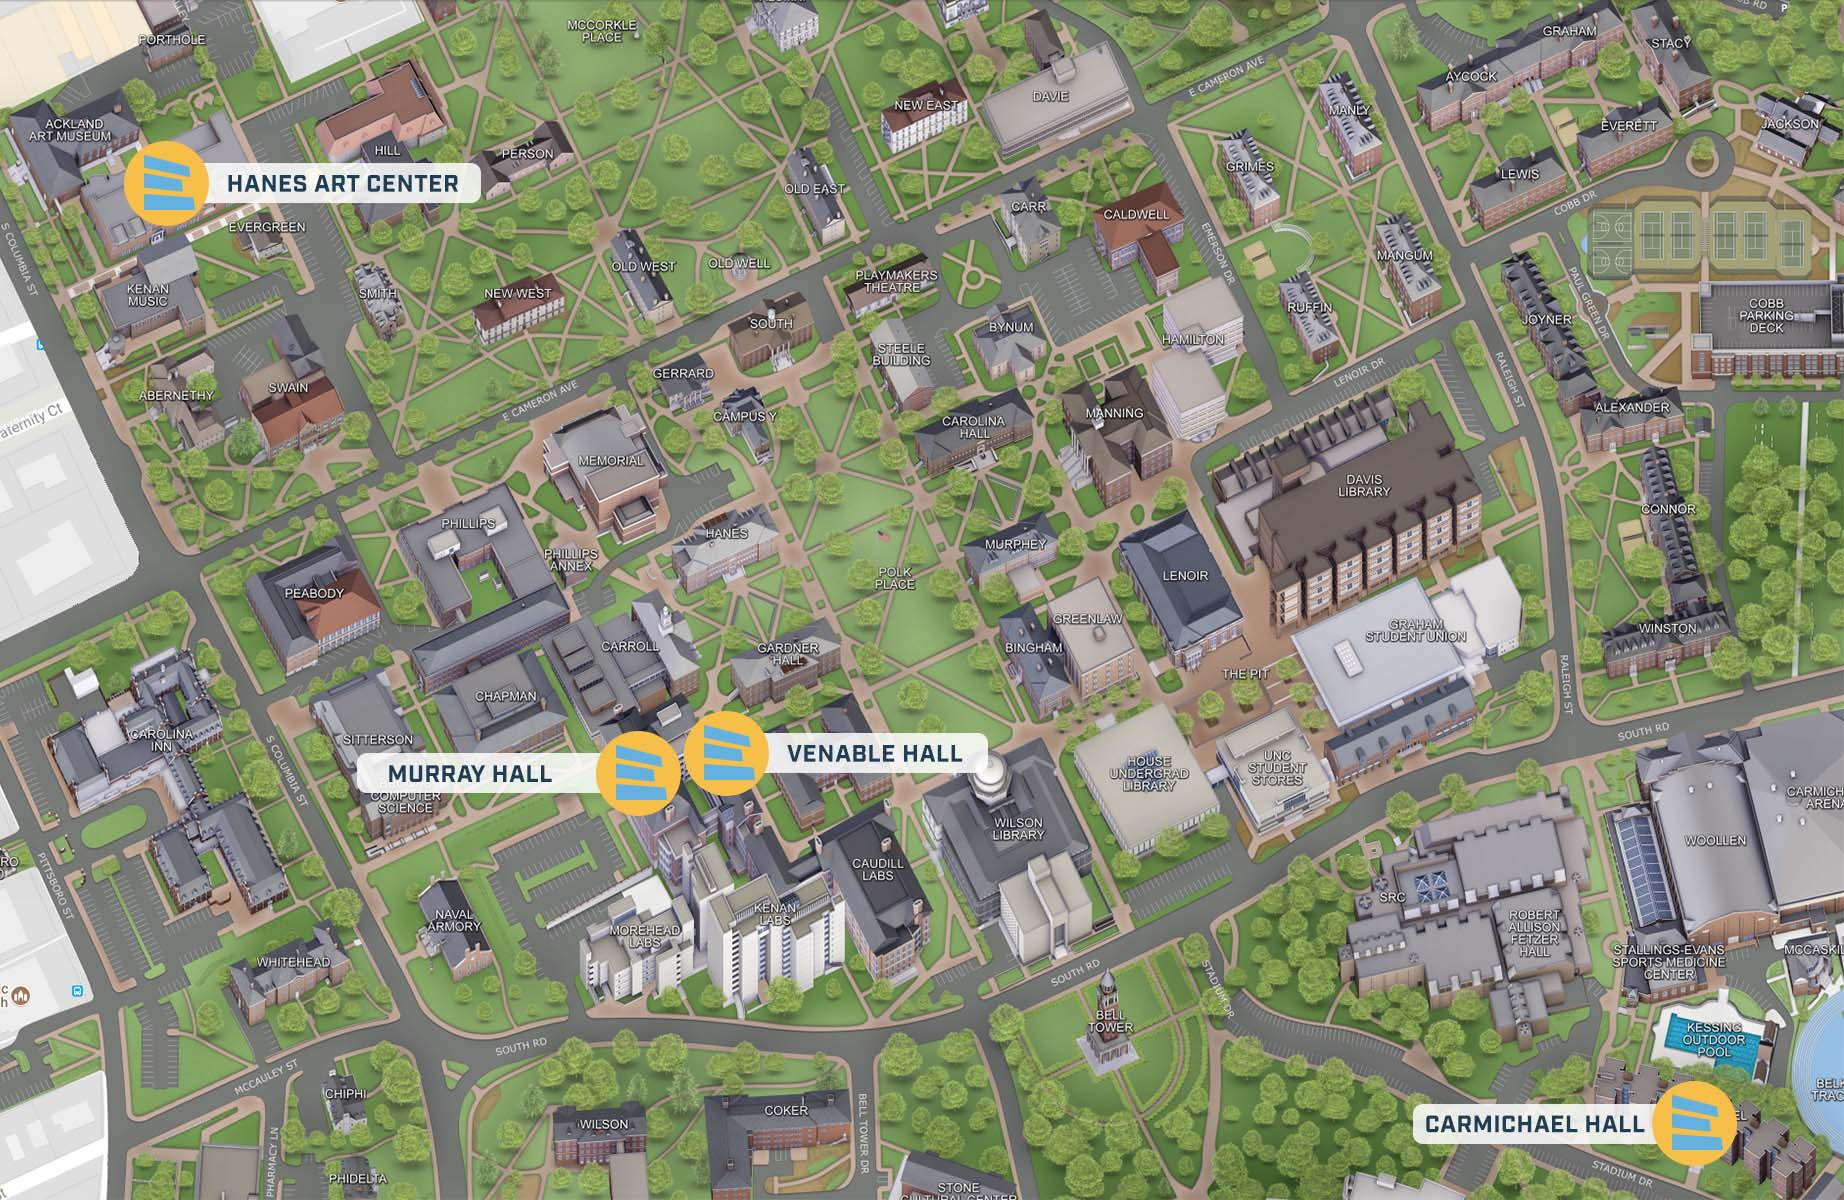 Unc Chapel Hill Campus Map locations |